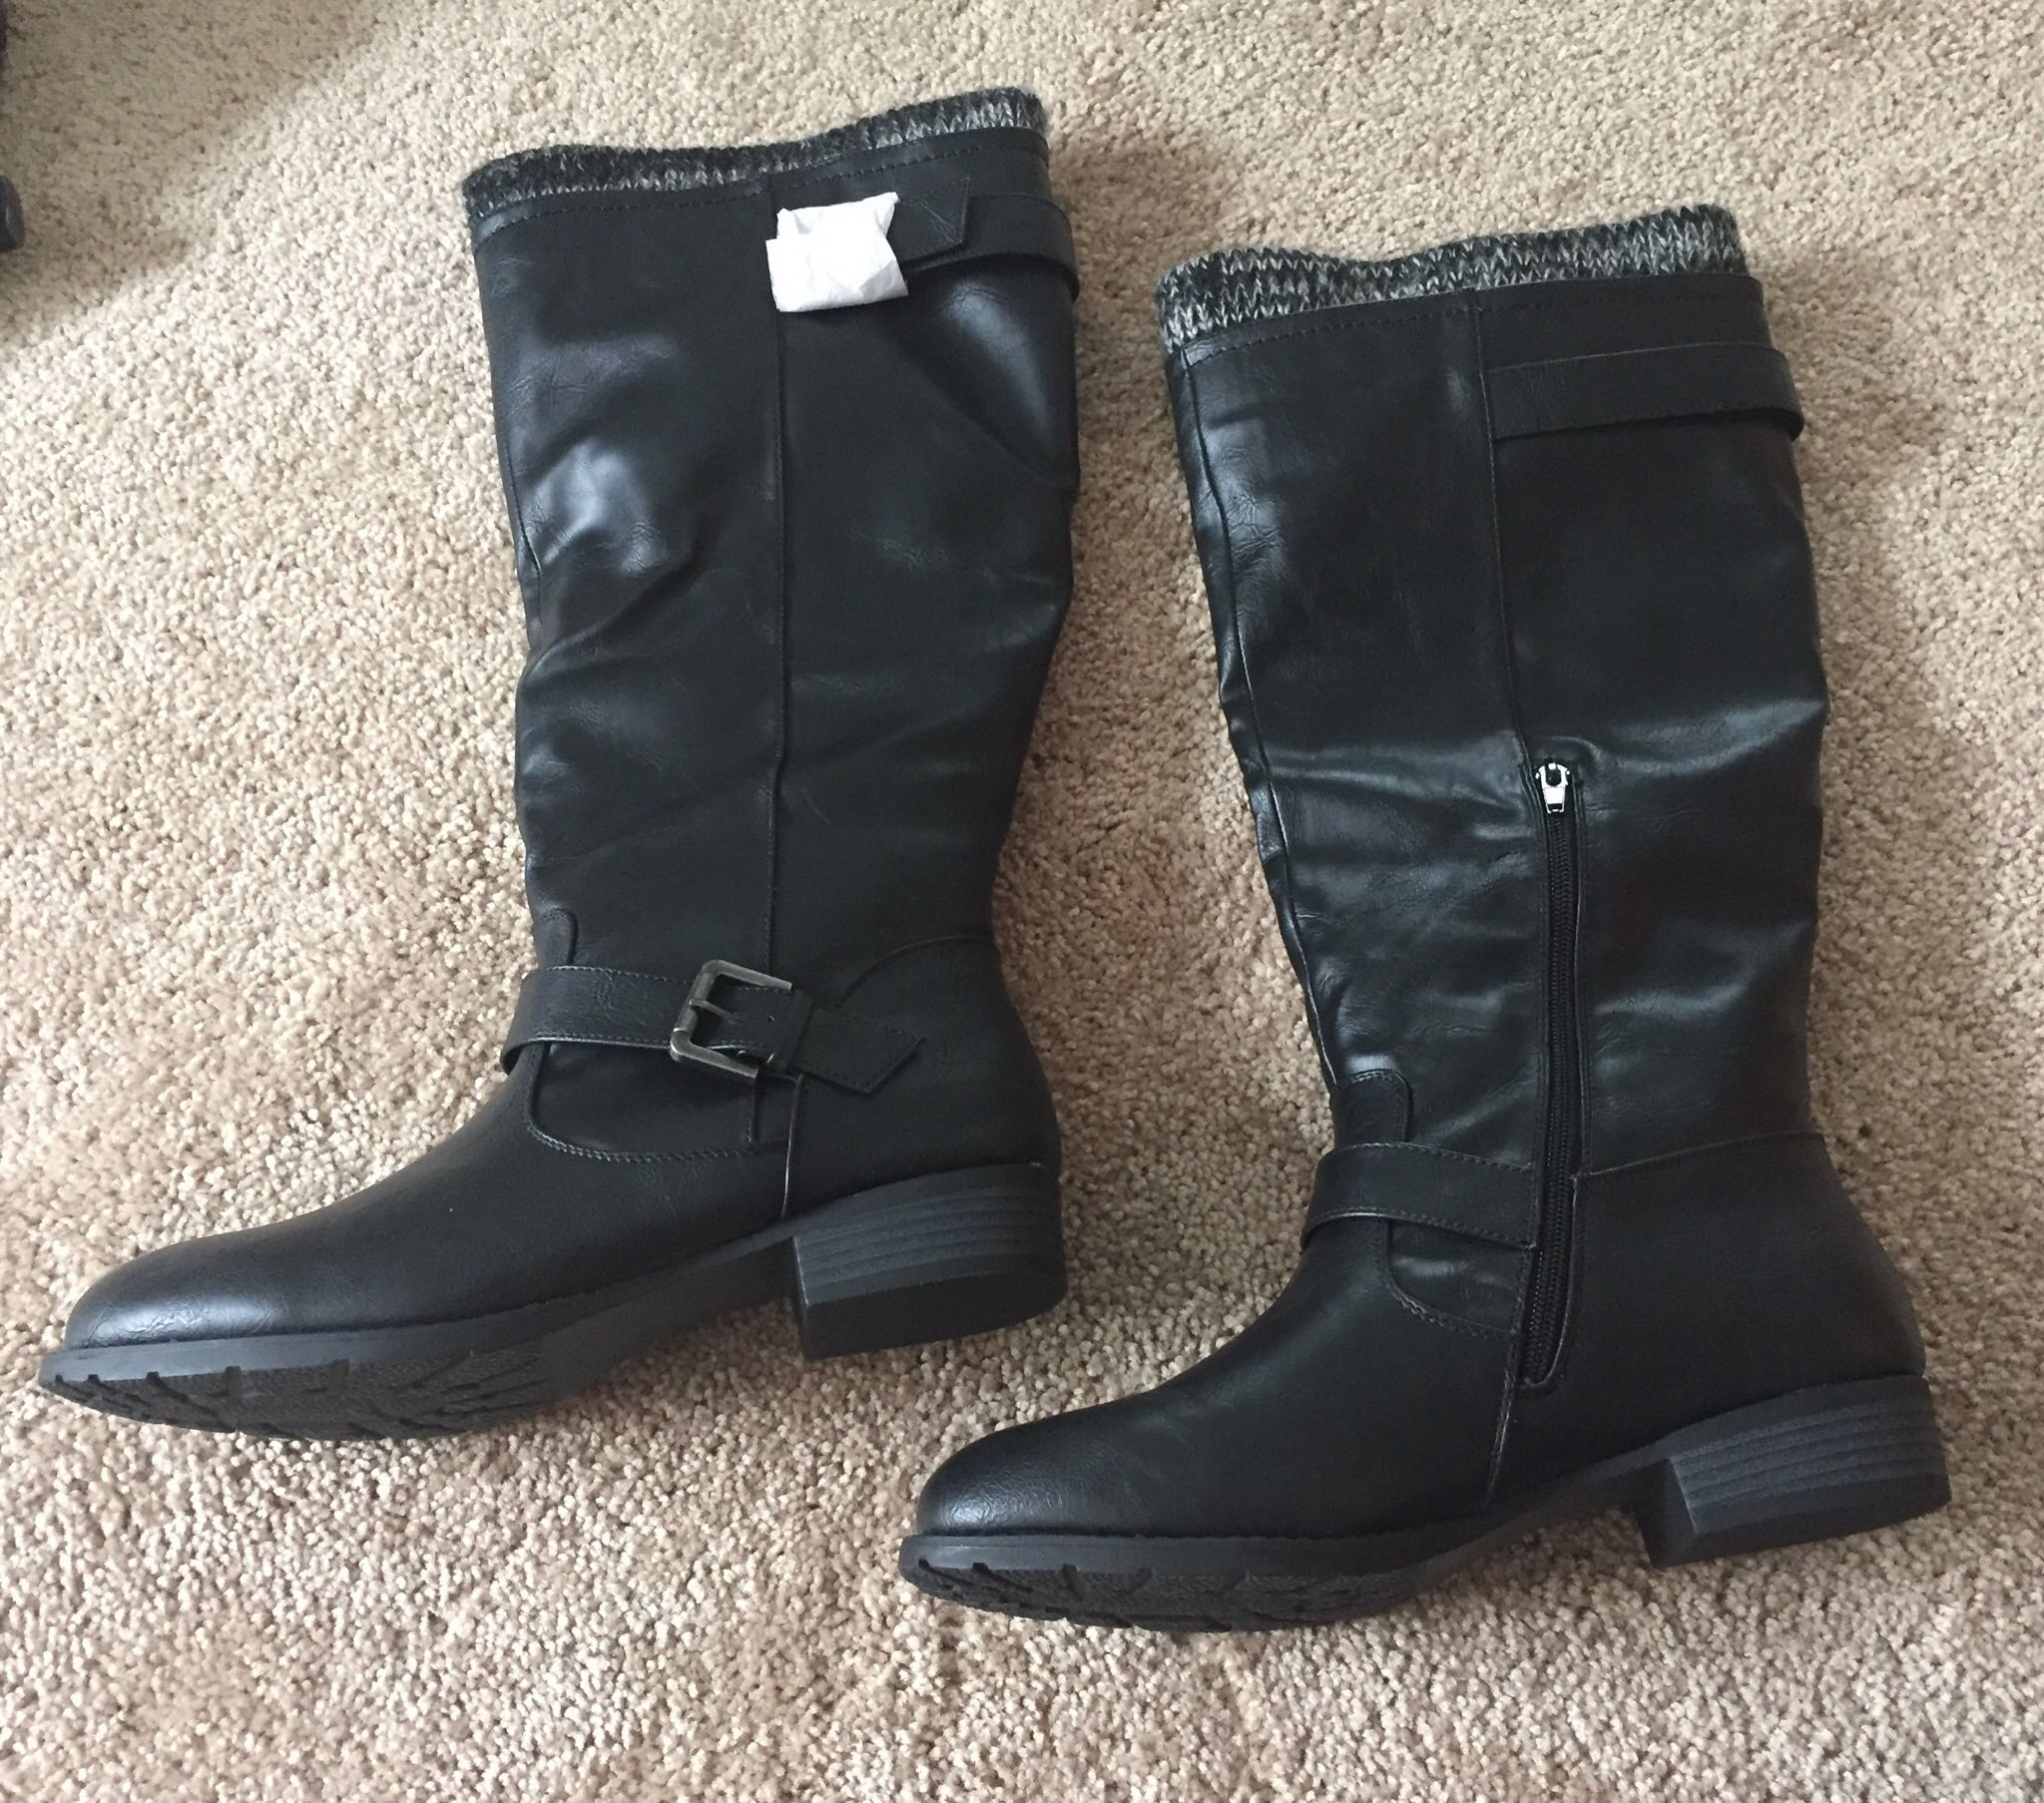 Brand New Black Boots - Size 9 Wide Calf